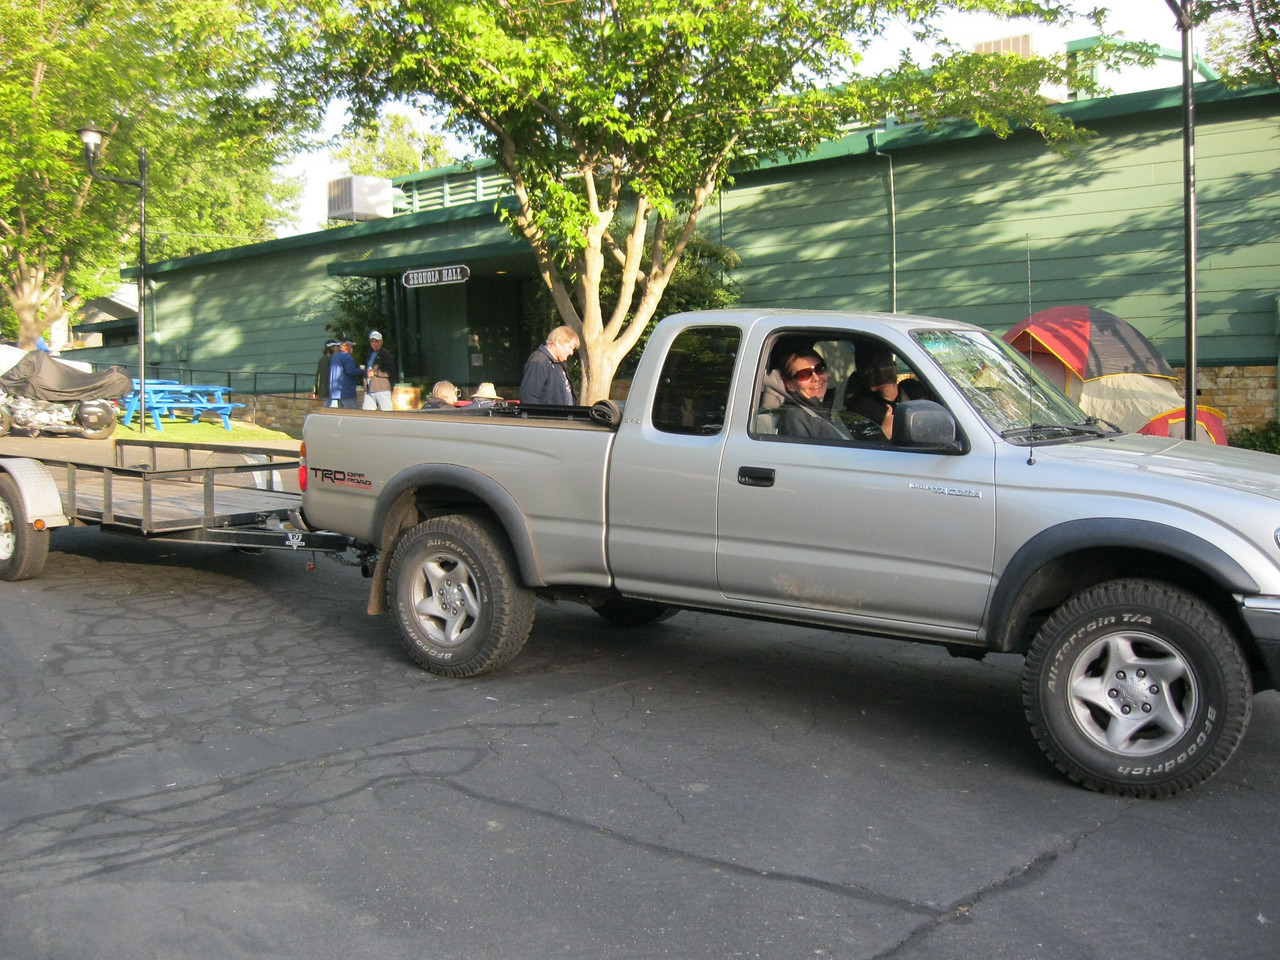 Veronica Rowan sets out to rescue MIke McKee with David Brakebill at the wheel. The truck belongs to Teresa Gutierrez and the trailer to Nathan Beck.